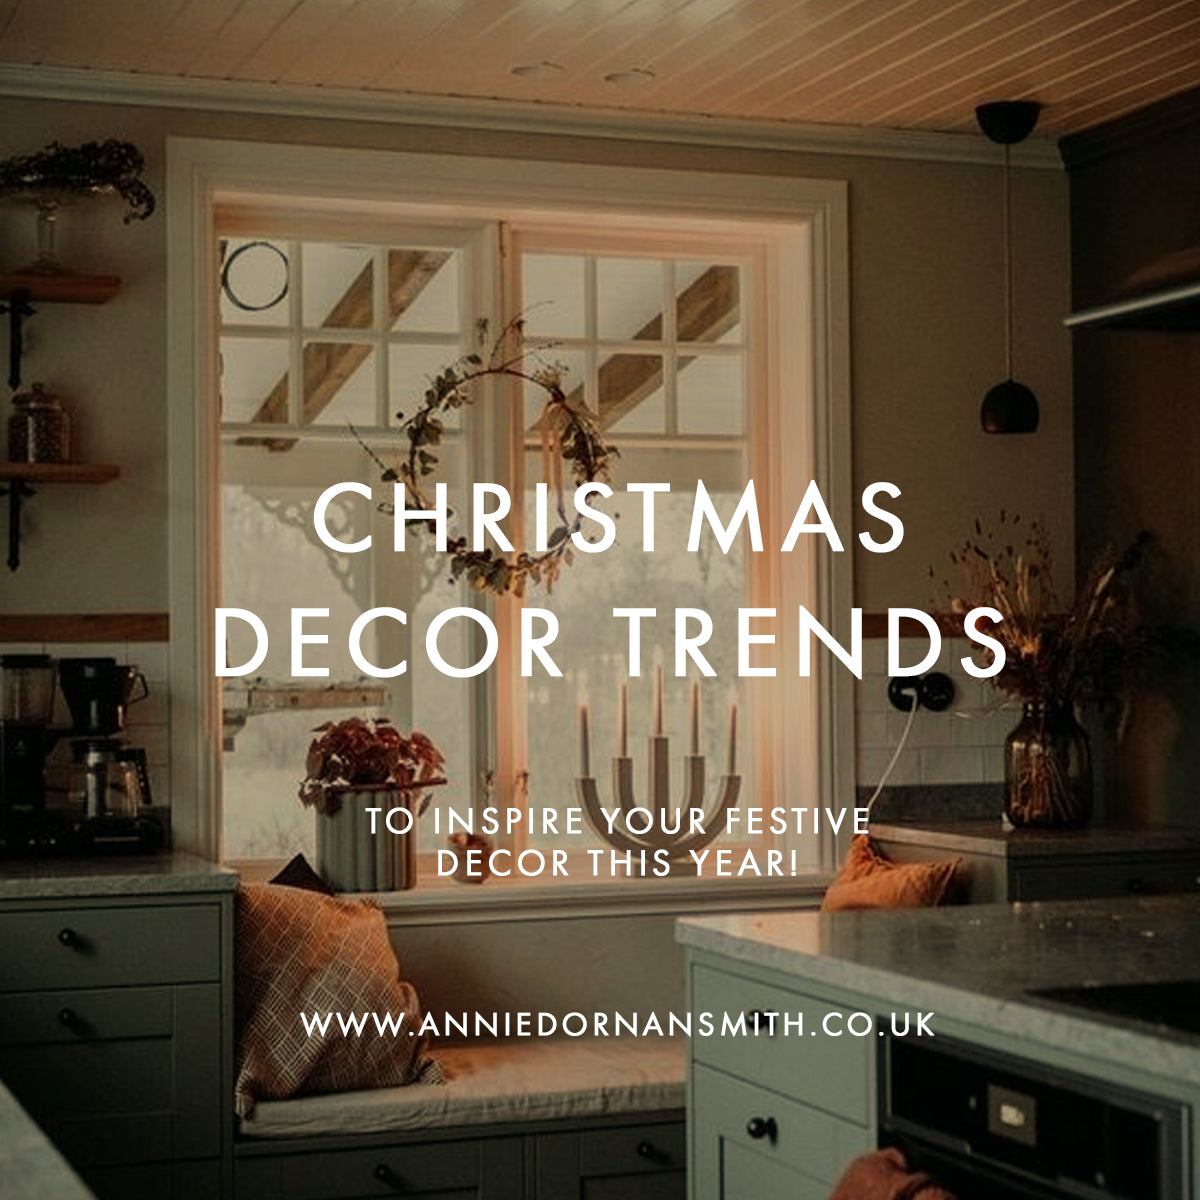 Festive Trends to Inspire Your Christmas Decor This Year!